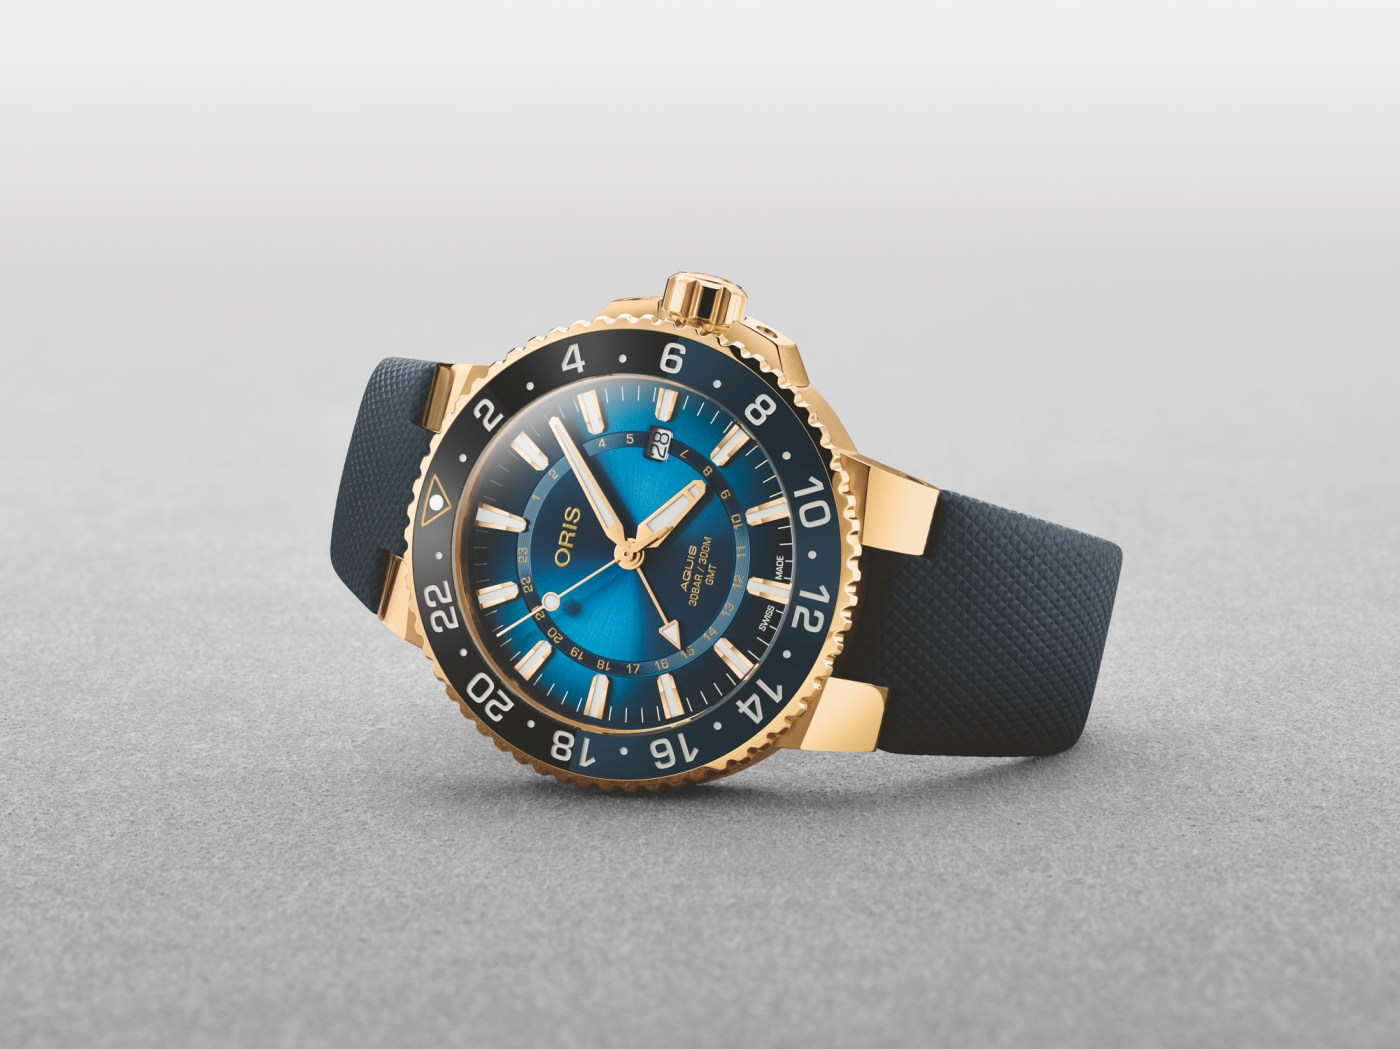 Oris Carysfort Reef Limited Edition 2020